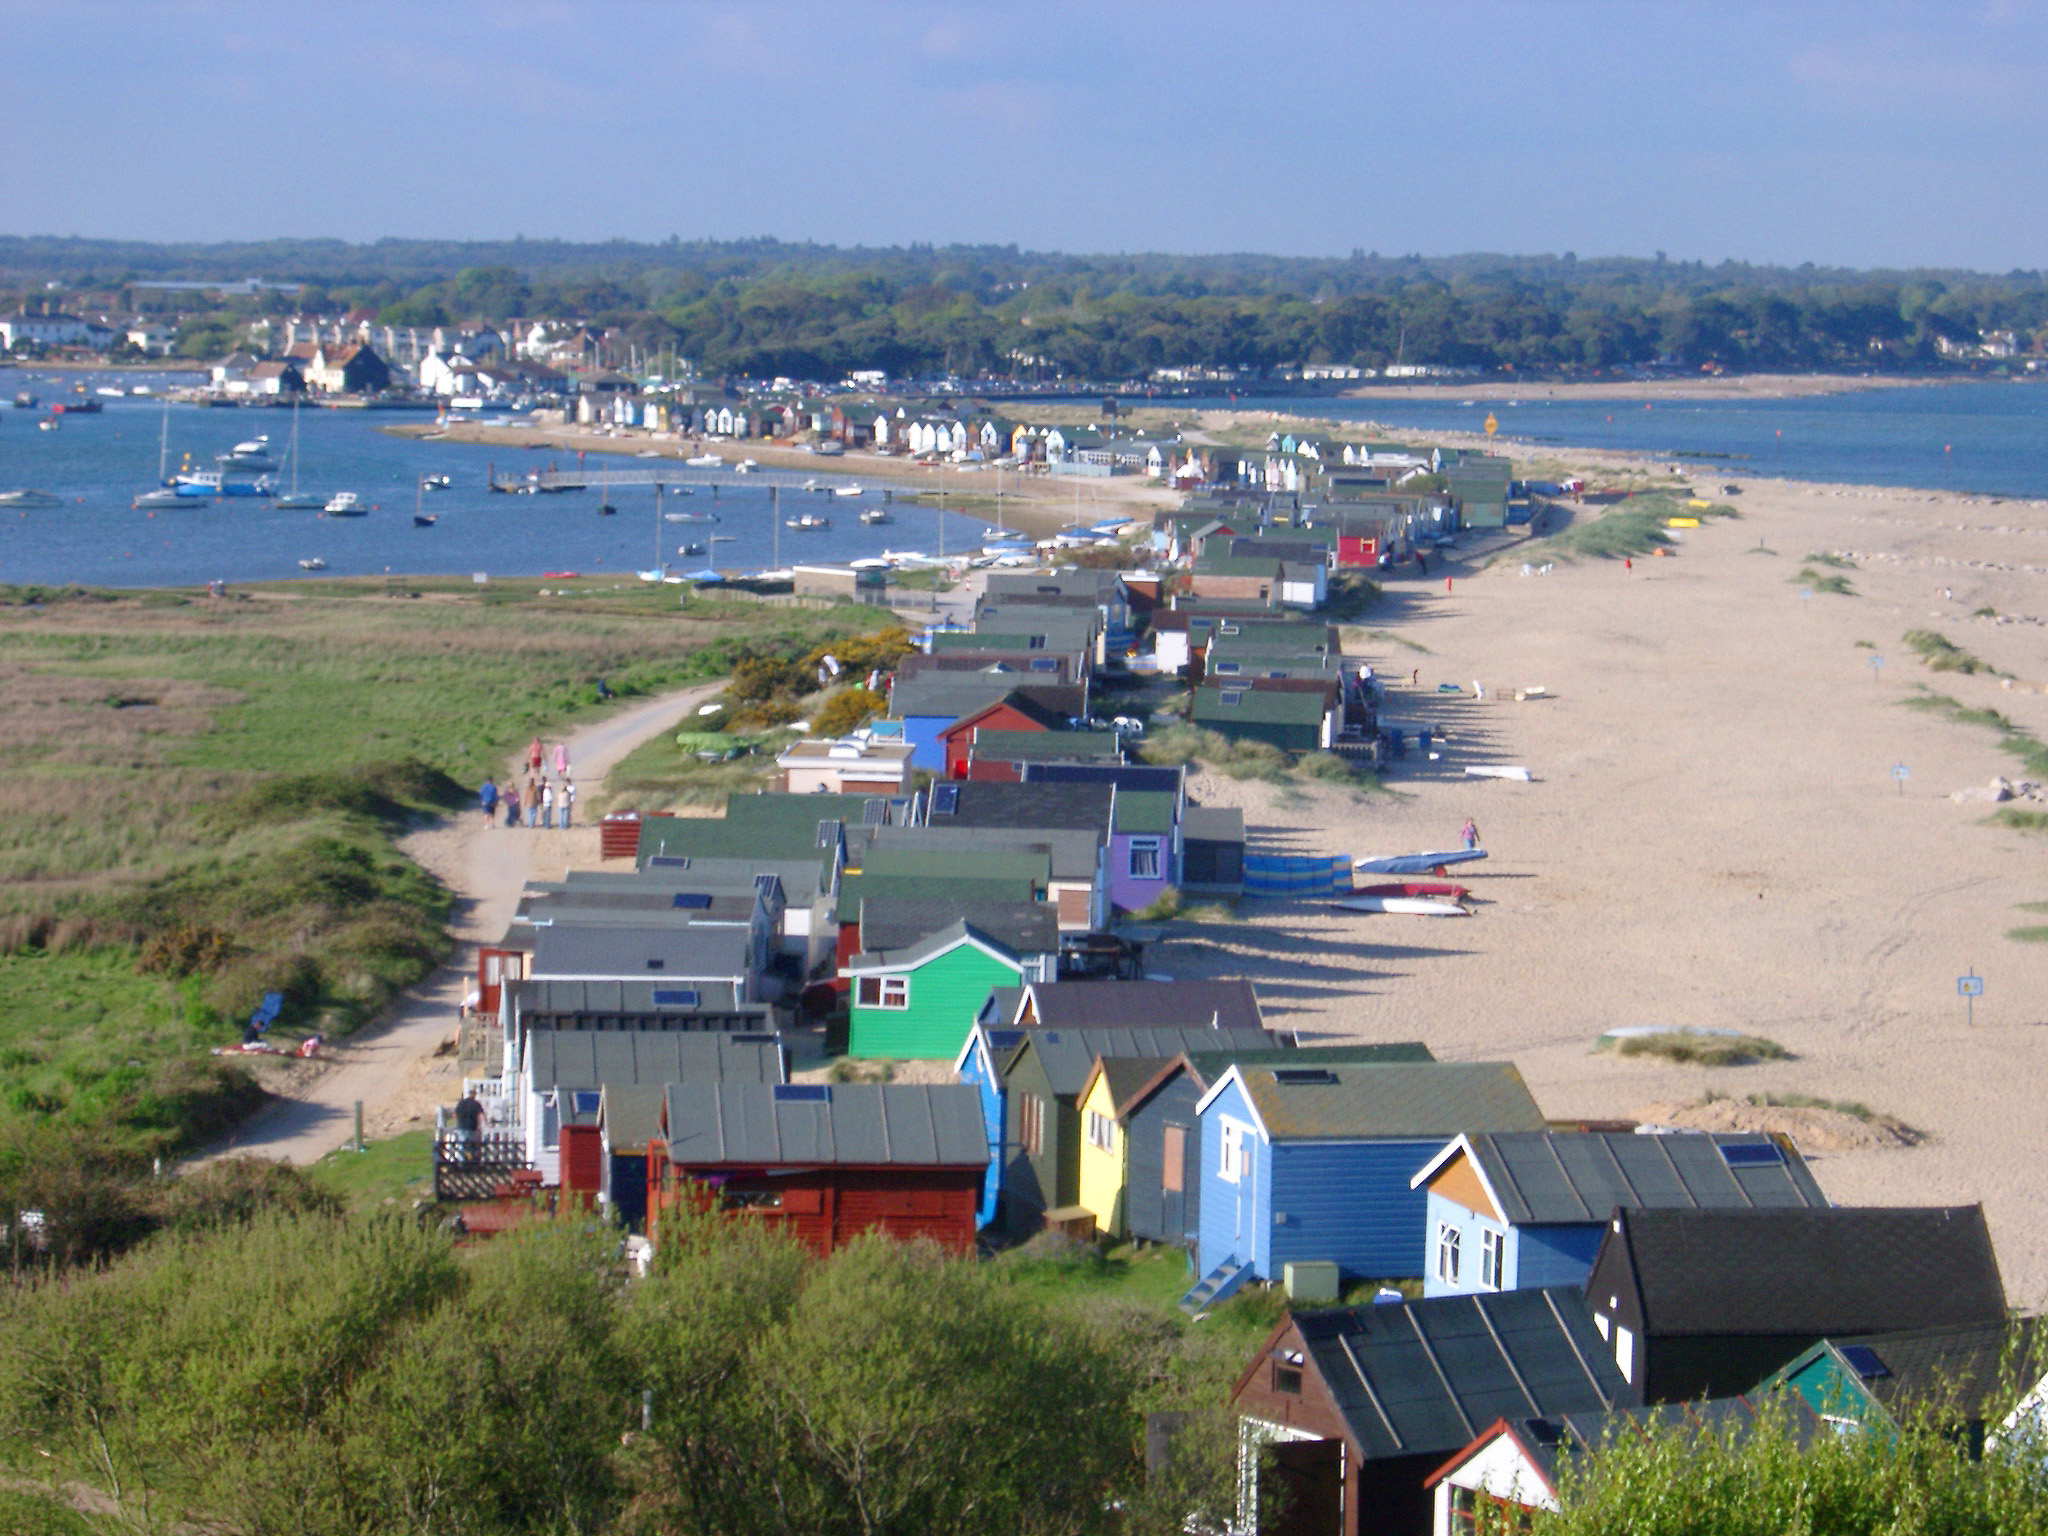 Row of colorful beach huts or cabins for vacations and getaways lining the Dorset seashore, high angle landscape view